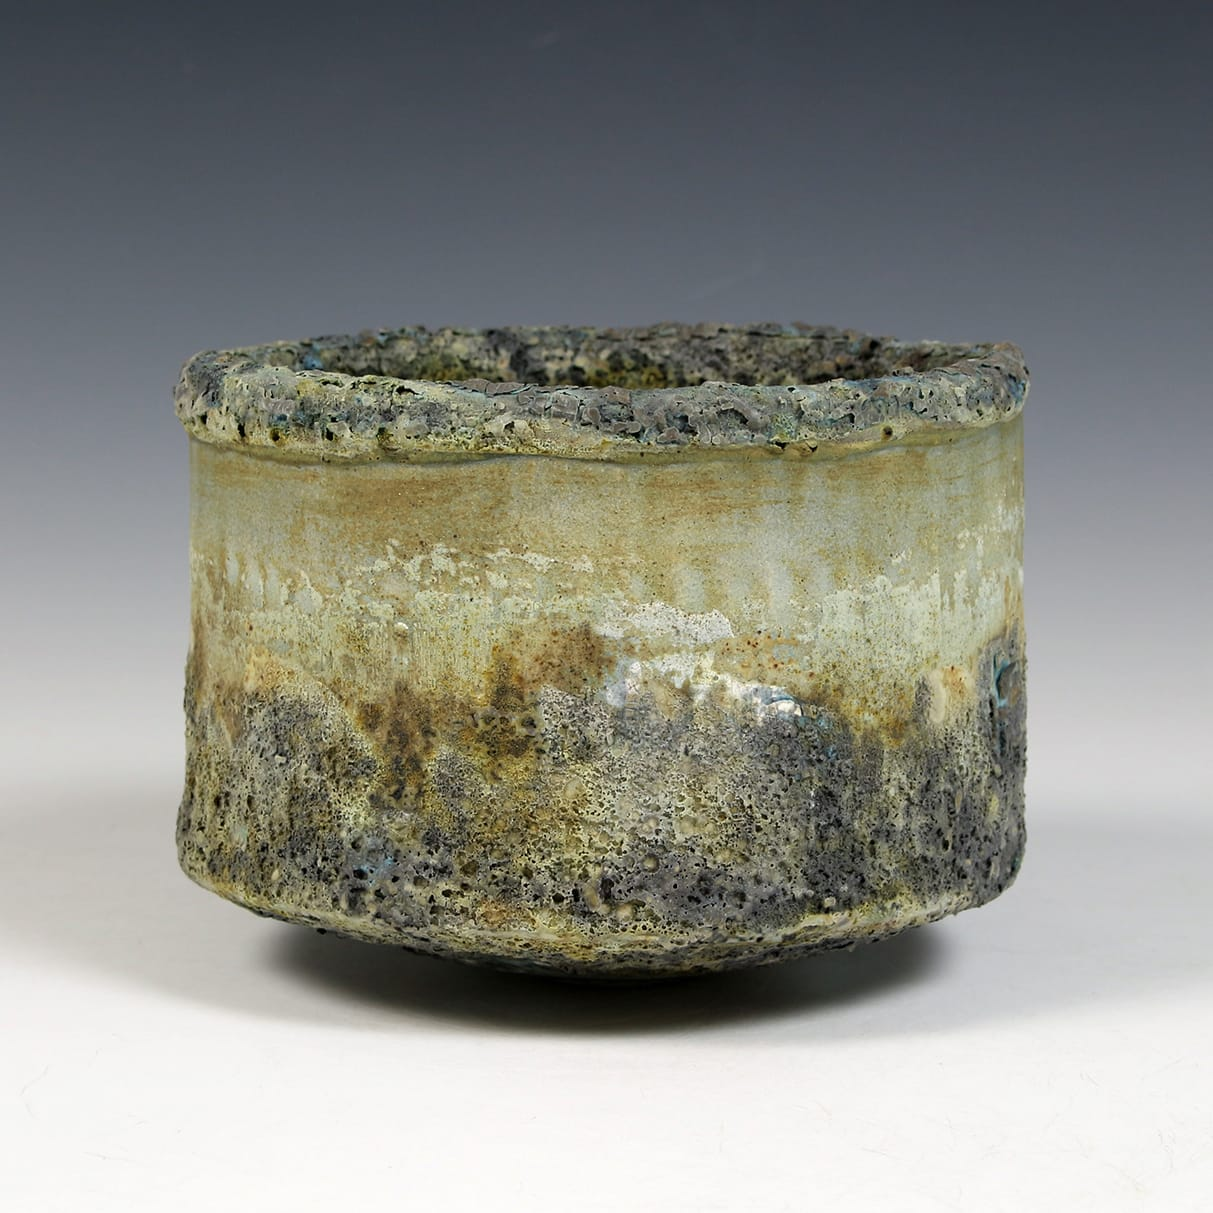 """<span class=""""link fancybox-details-link""""><a href=""""/content/feature/40/artworks7990/"""">View Detail Page</a></span><div class=""""signed_and_dated"""">impressed seal mark 'PW'</div> <div class=""""medium"""">stoneware, multiple slips and glazes</div> <div class=""""dimensions"""">10 x 15 cm</div>"""